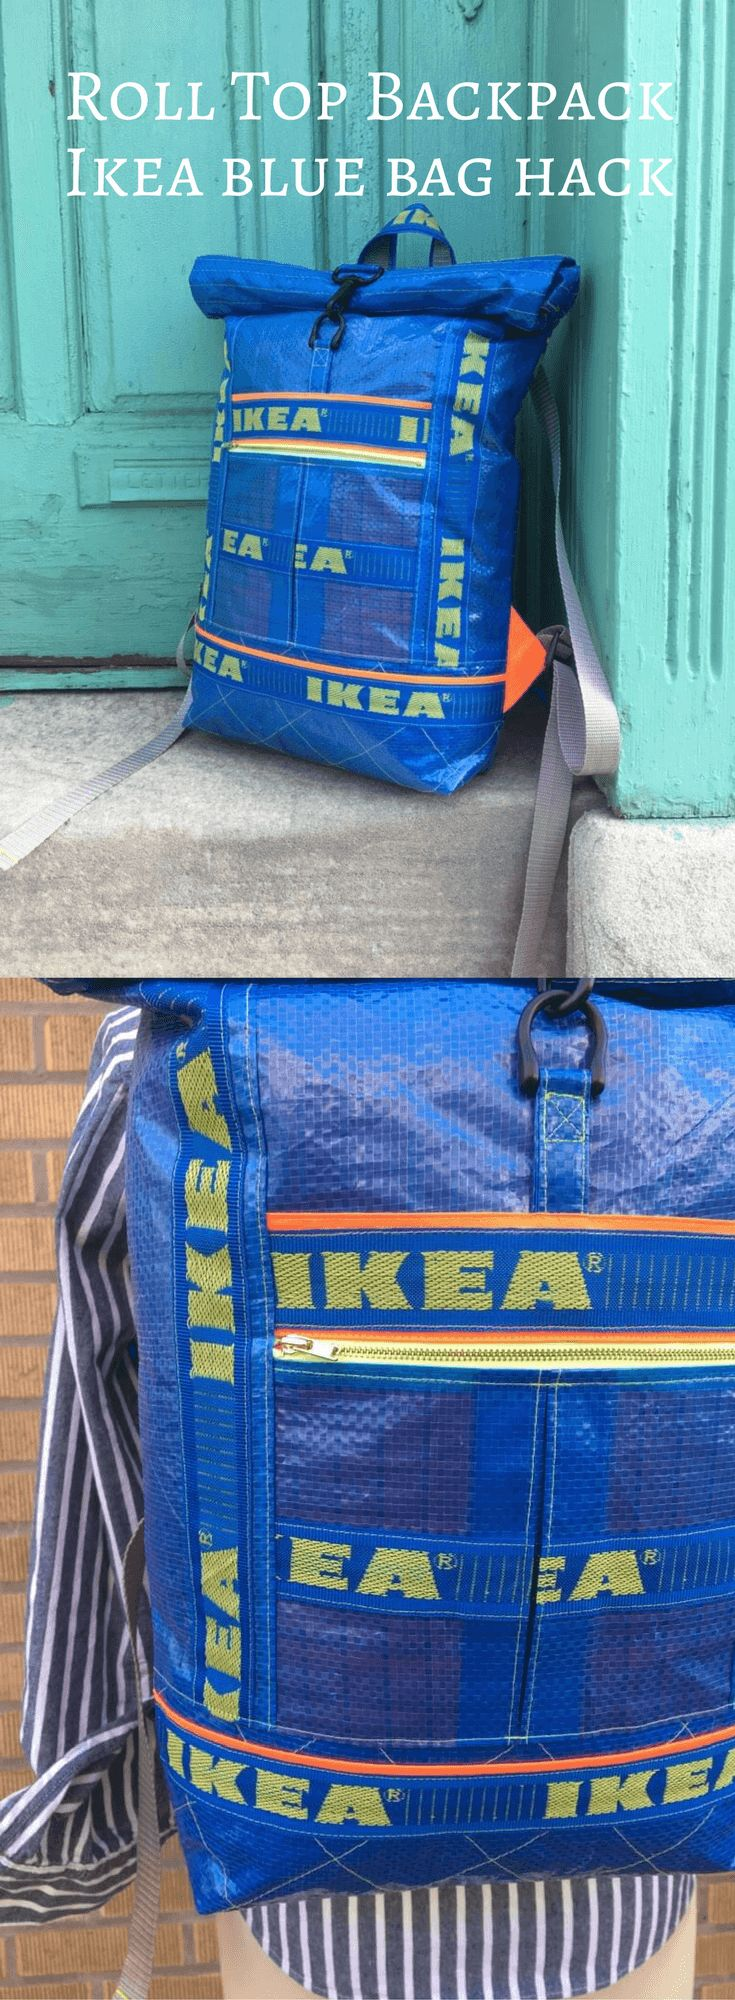 Sew good! A Roll-Top Backpack from IKEA Blue Bags https://www.ikeahackers.net/2018/01/roll-top-backpack.html